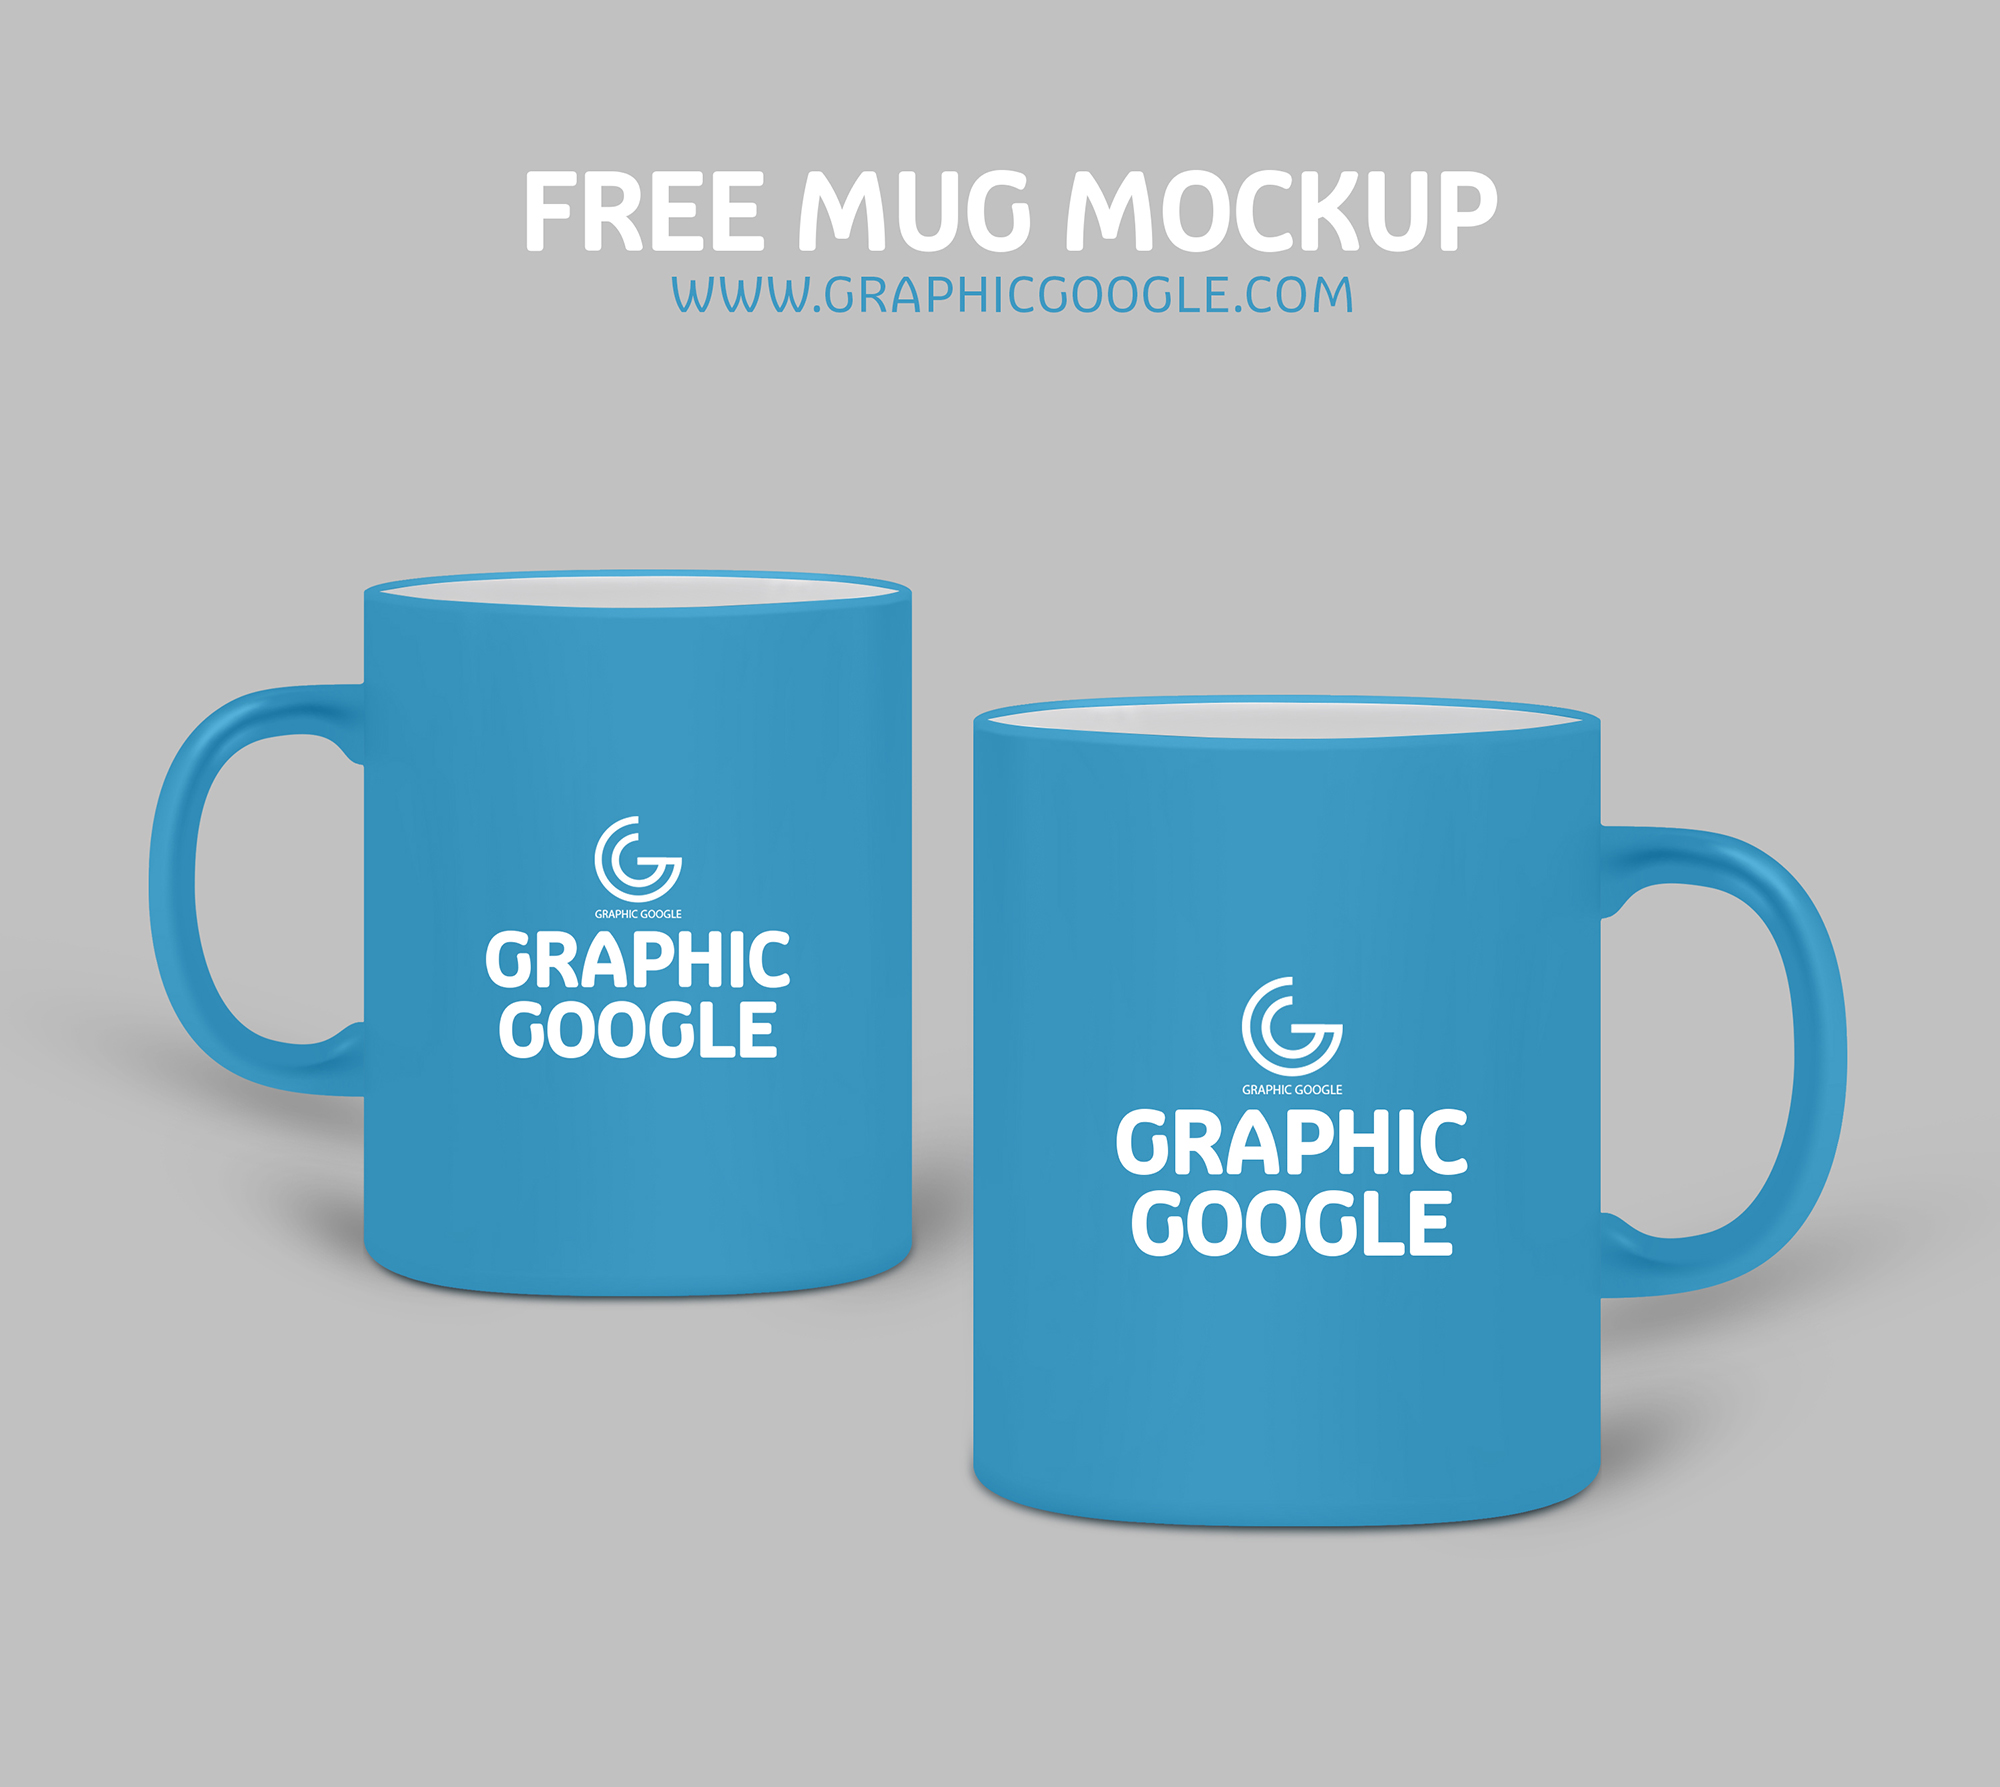 Download Free Coffee Mug Mockup White Mug Mockup Mug: Tasty Graphic Designs